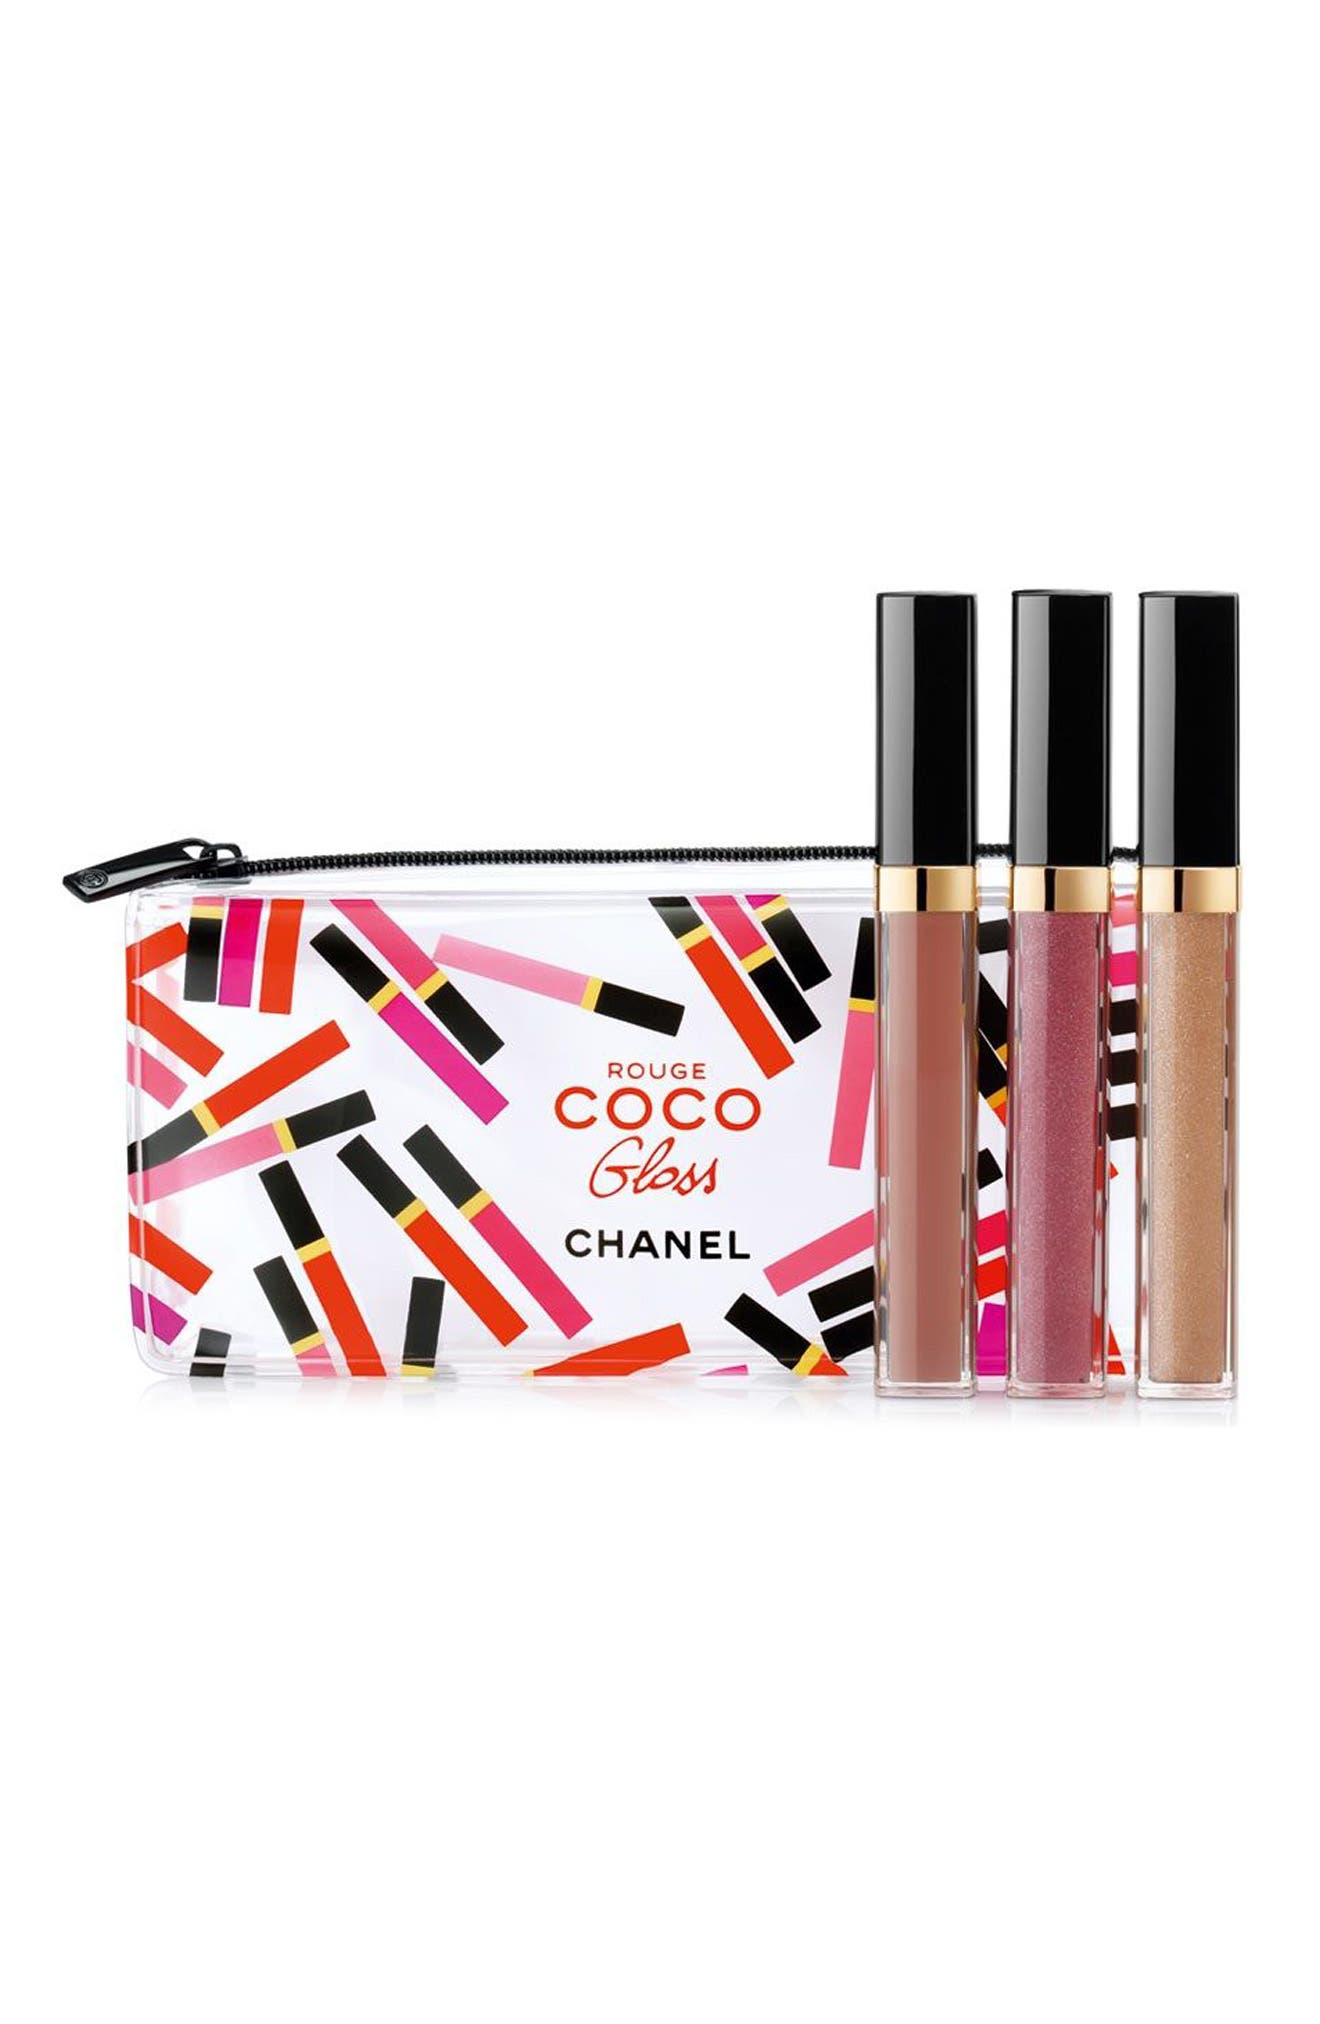 CHANEL NUDE MOOD ROUGE COCO GLOSS Moisturizing Glossimer Trio